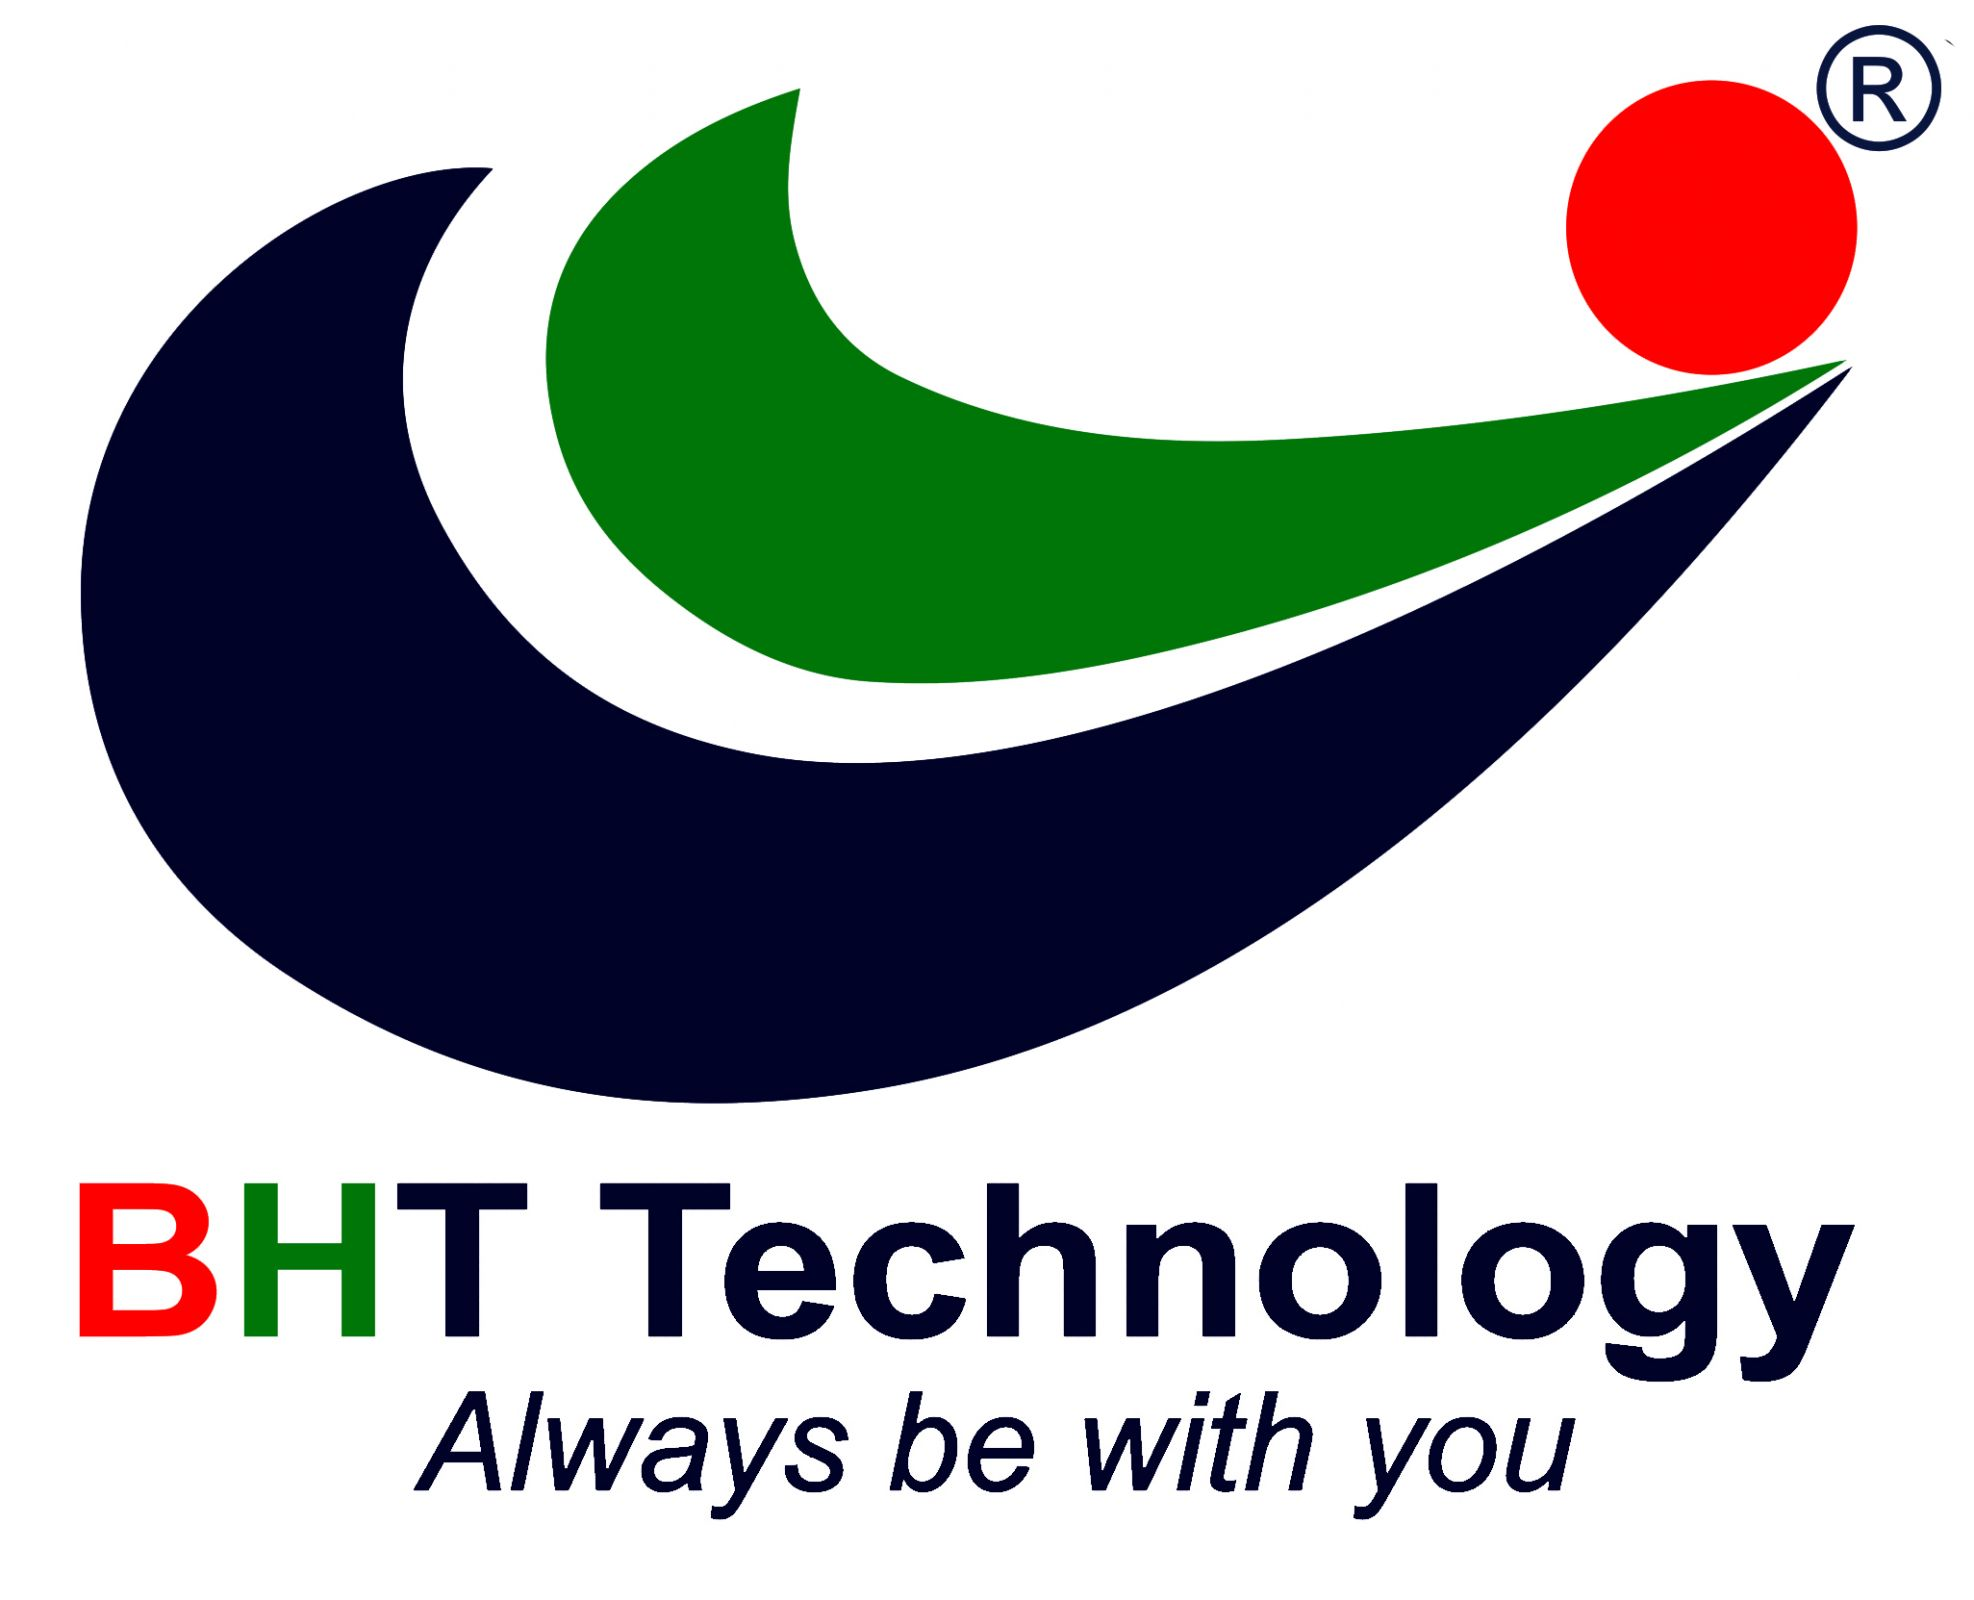 BHT technology